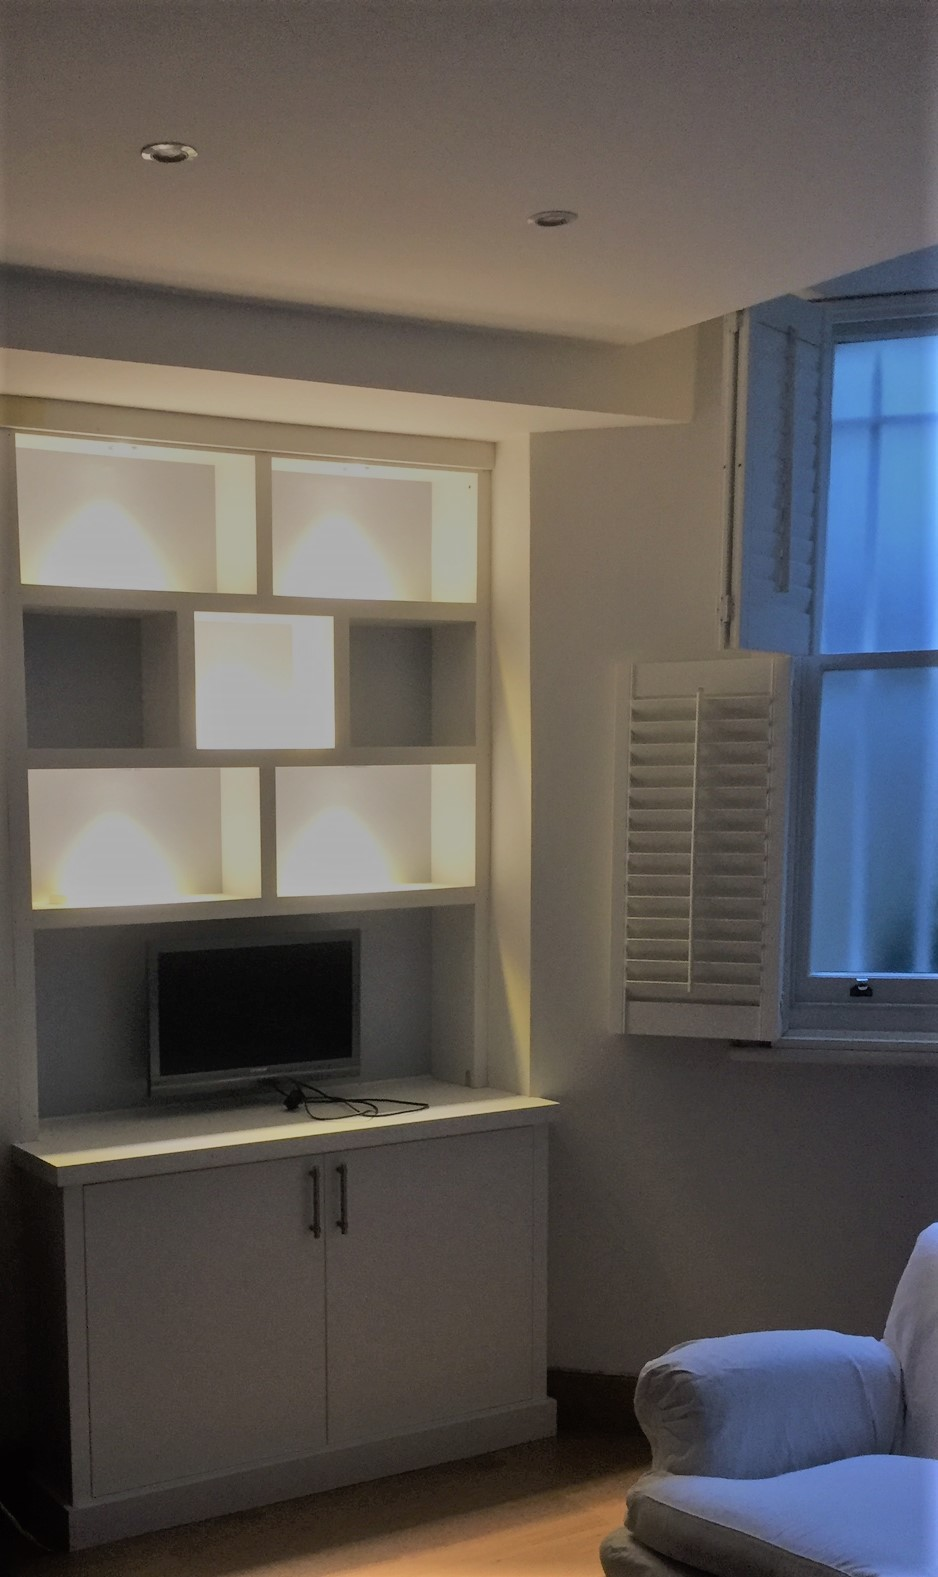 A contemporary styled top box with the addition of down lighting within.